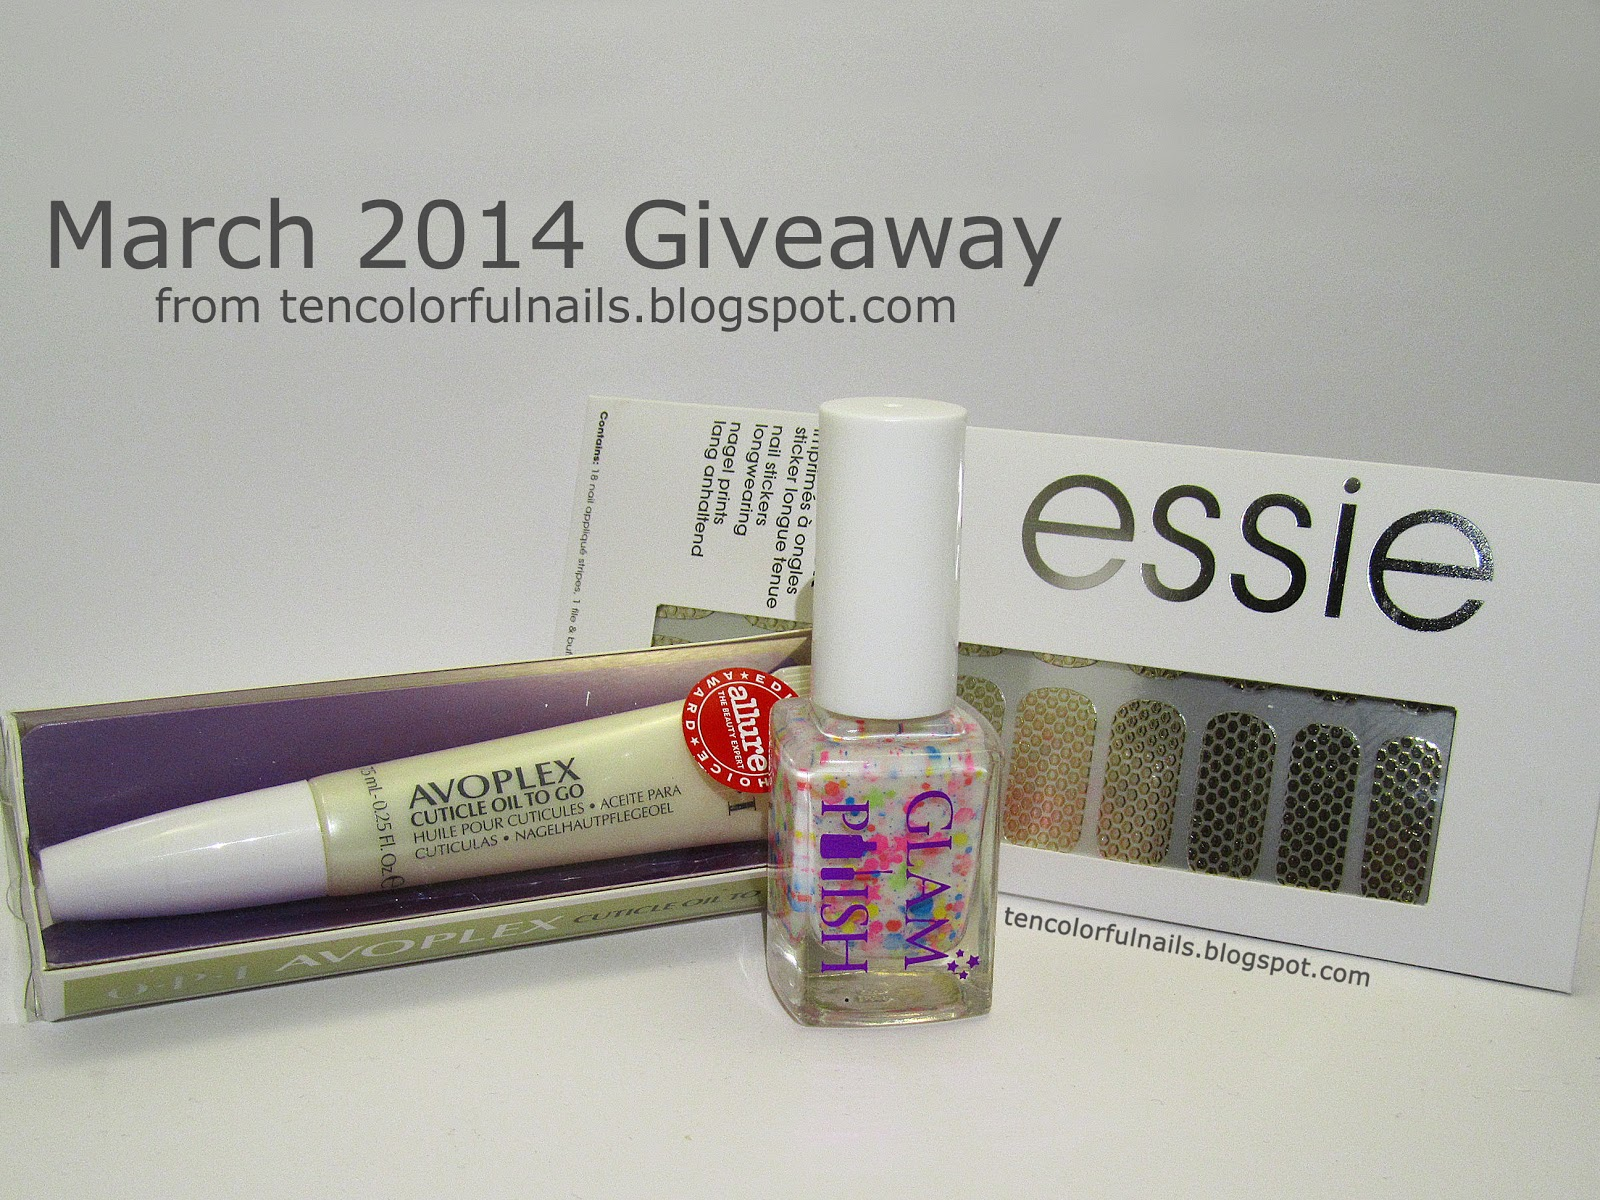 http://tencolorfulnails.blogspot.com/2014/03/march-2014-giveaway.html